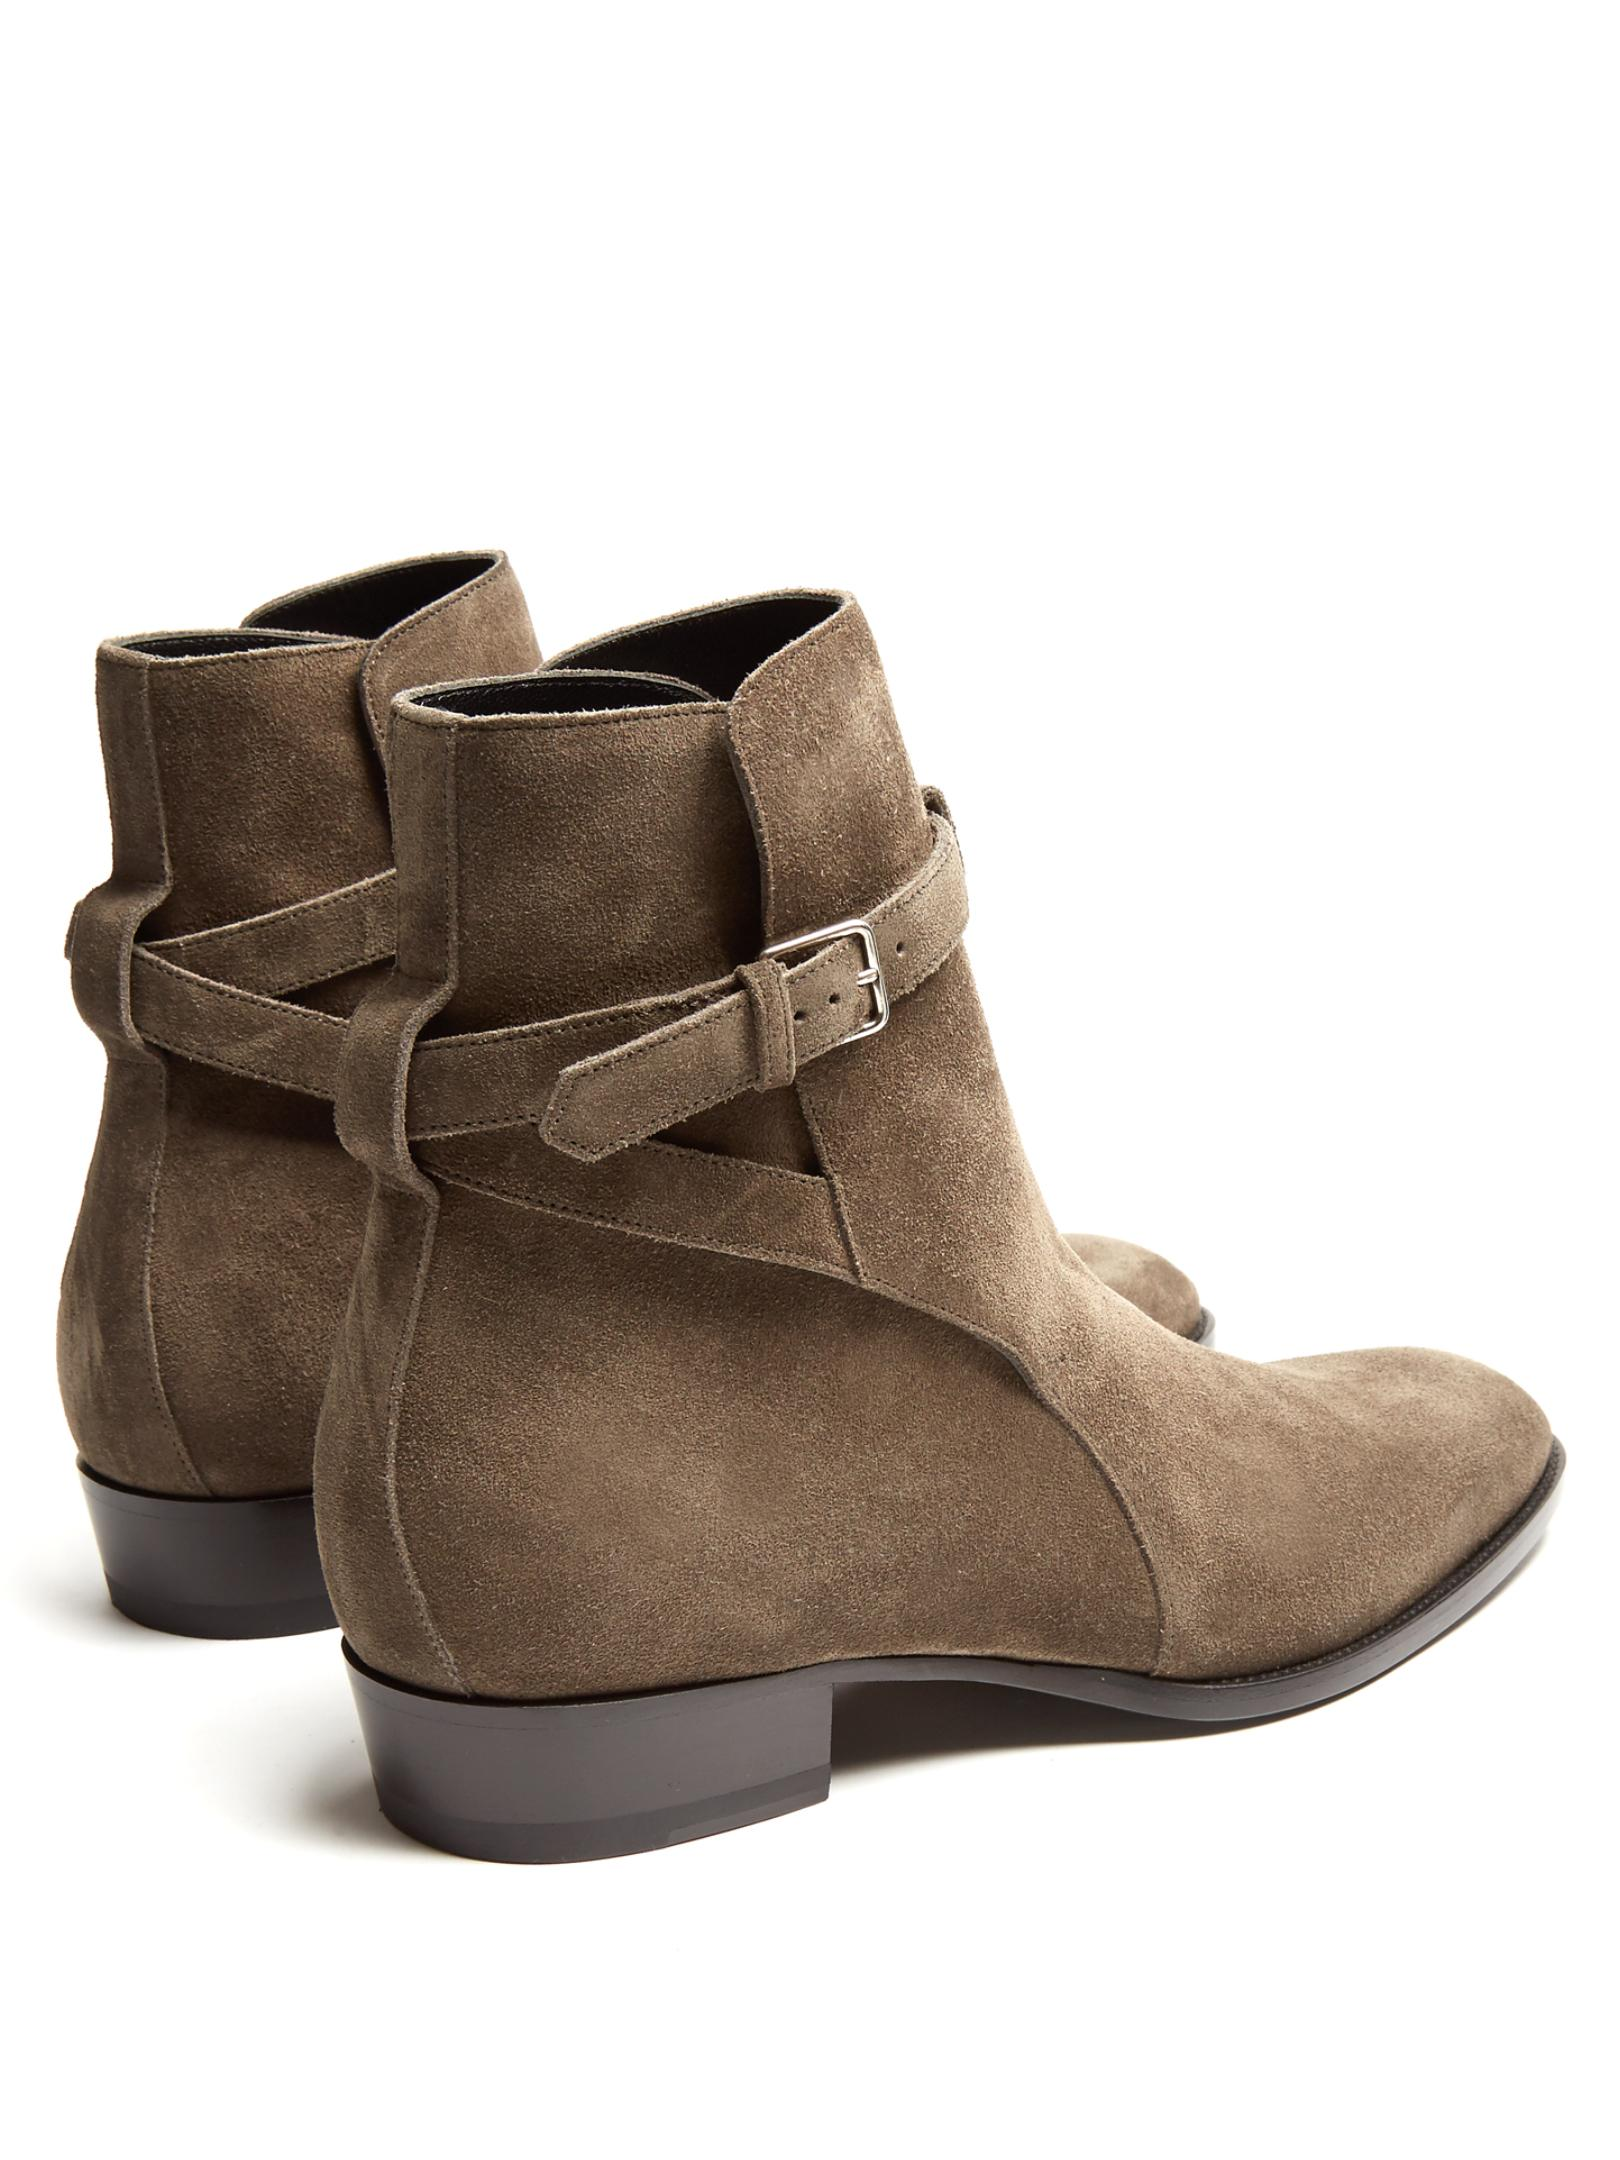 Lyst Saint Laurent Wyatt Jodhpur Suede Ankle Boots In